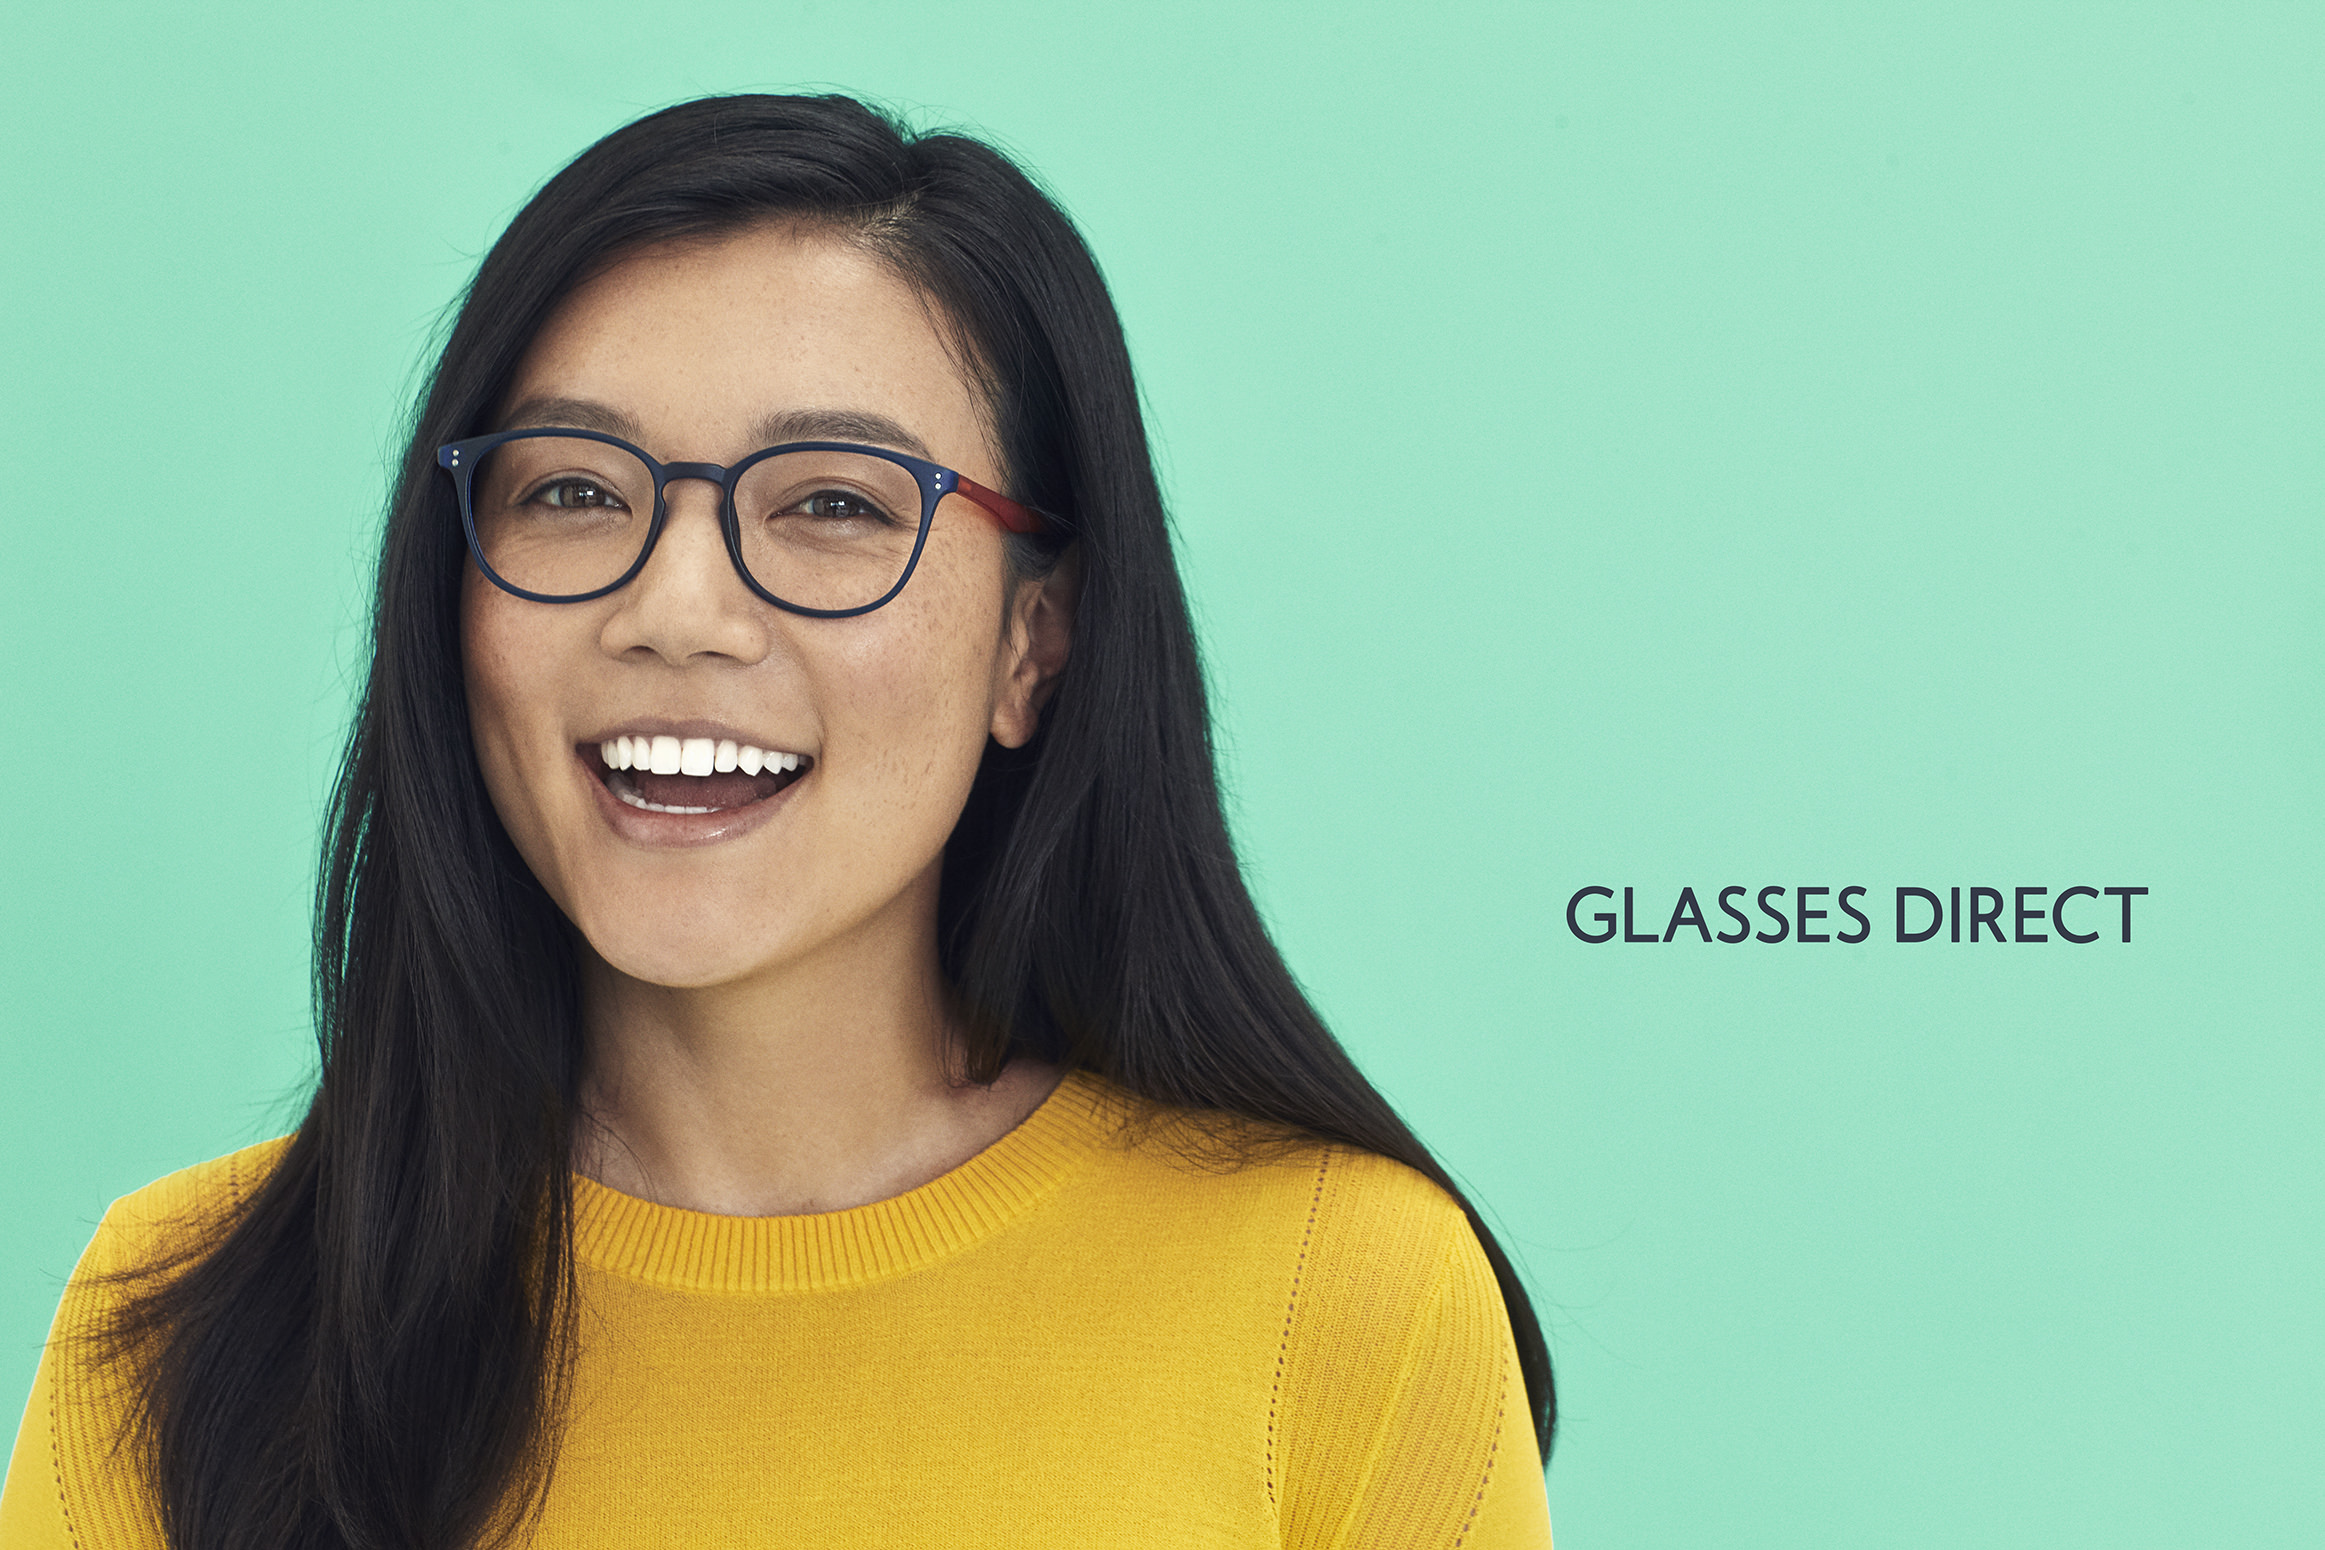 170725_GLASSES_DIRECT52253-f2tif